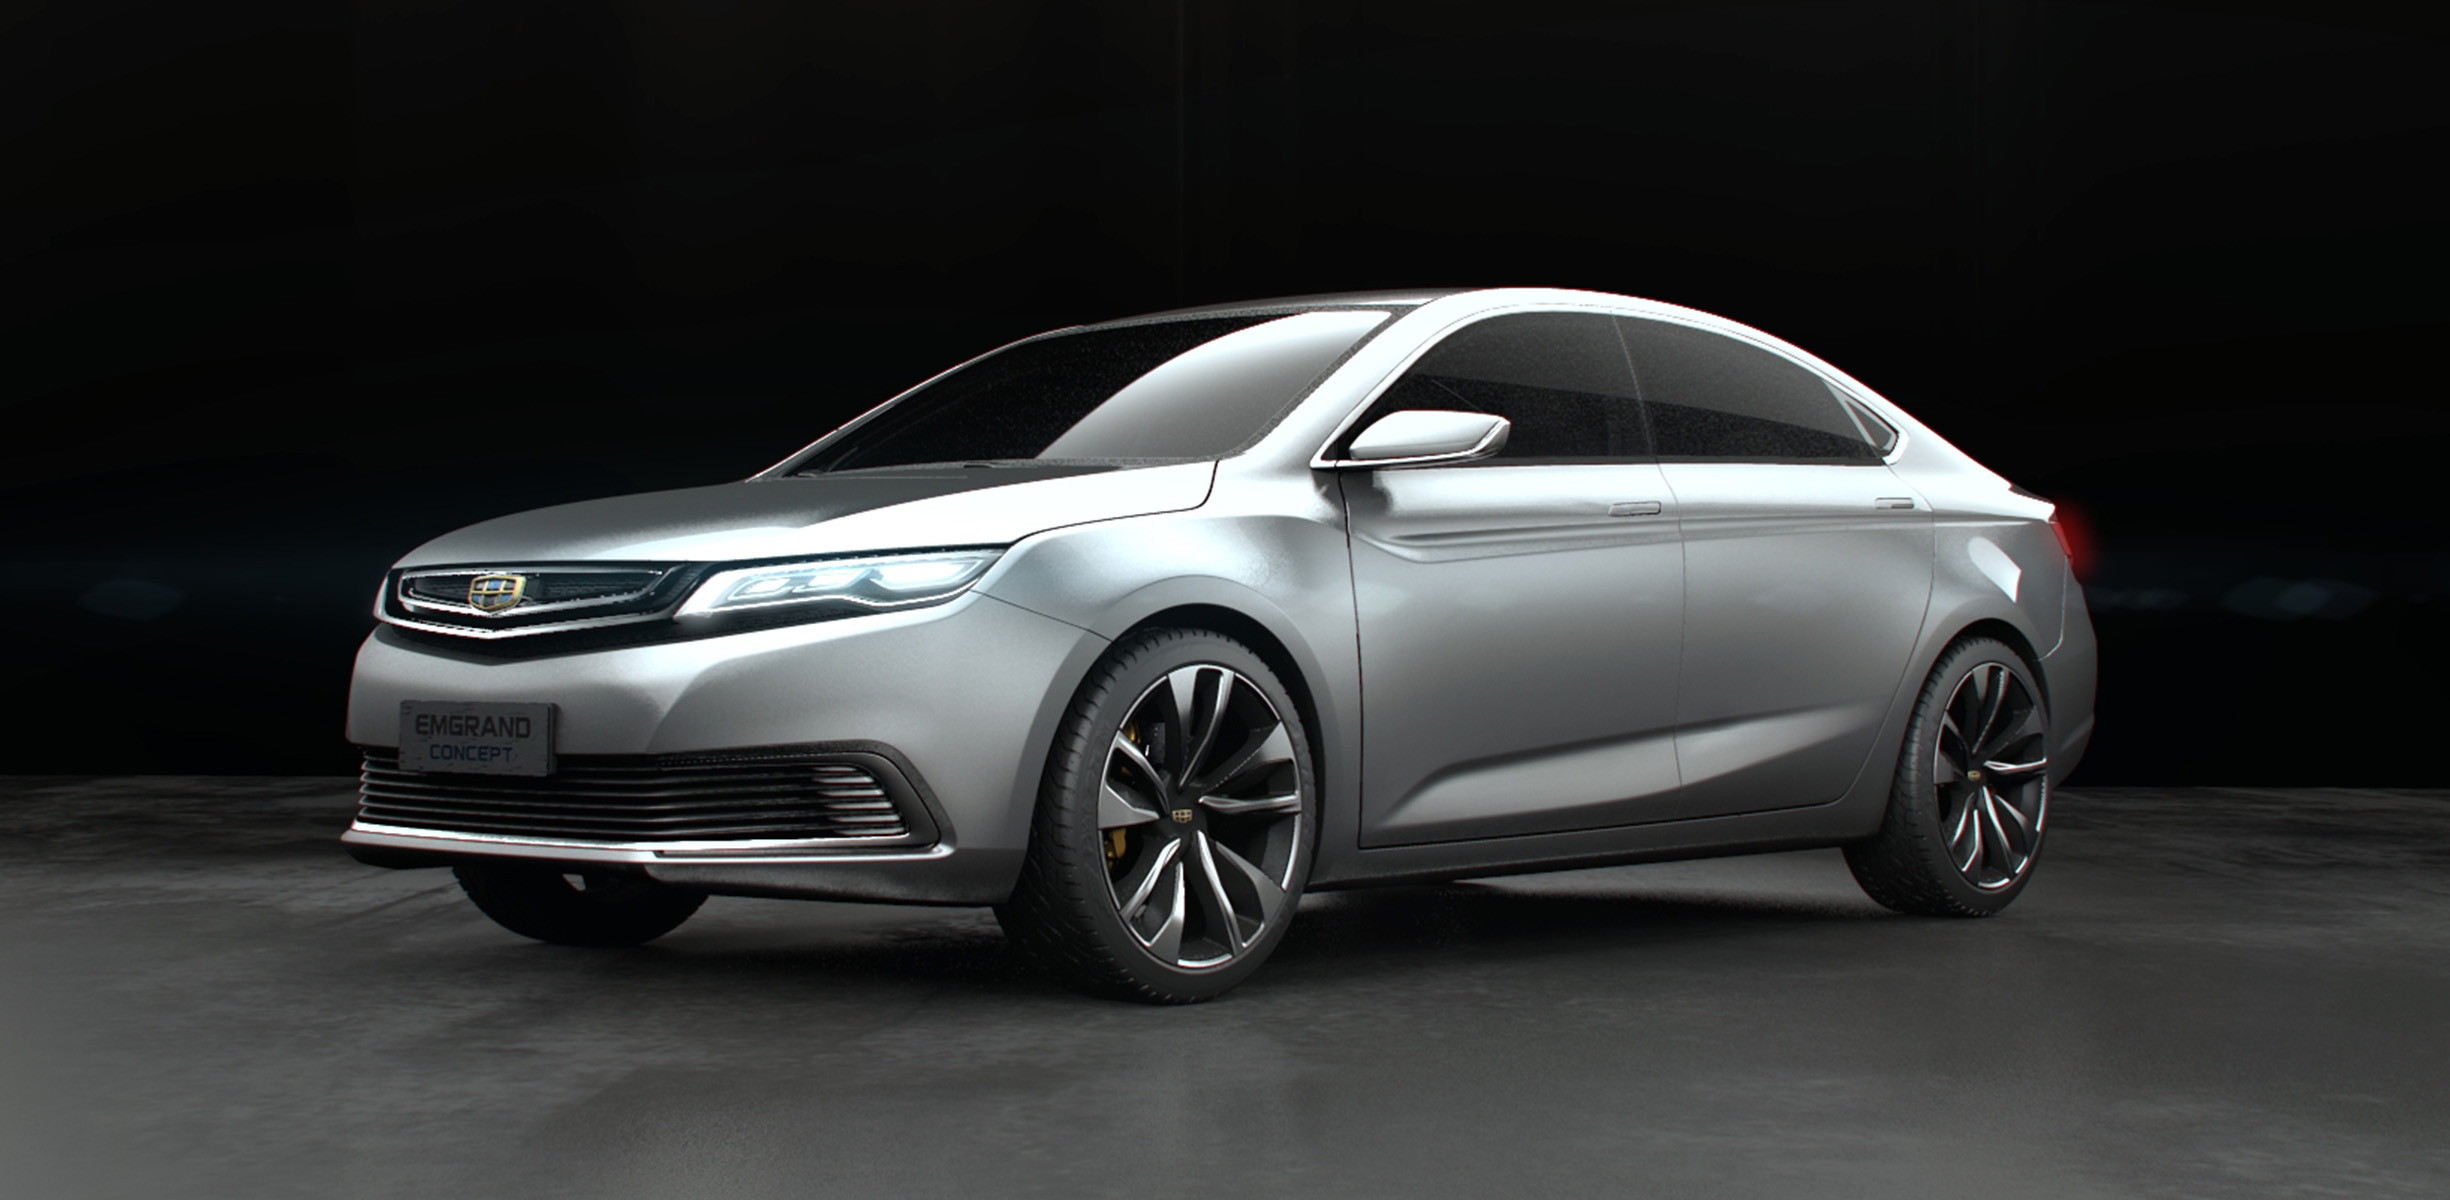 Geely Emgrand Concept unveiled in Shanghai - photos ...